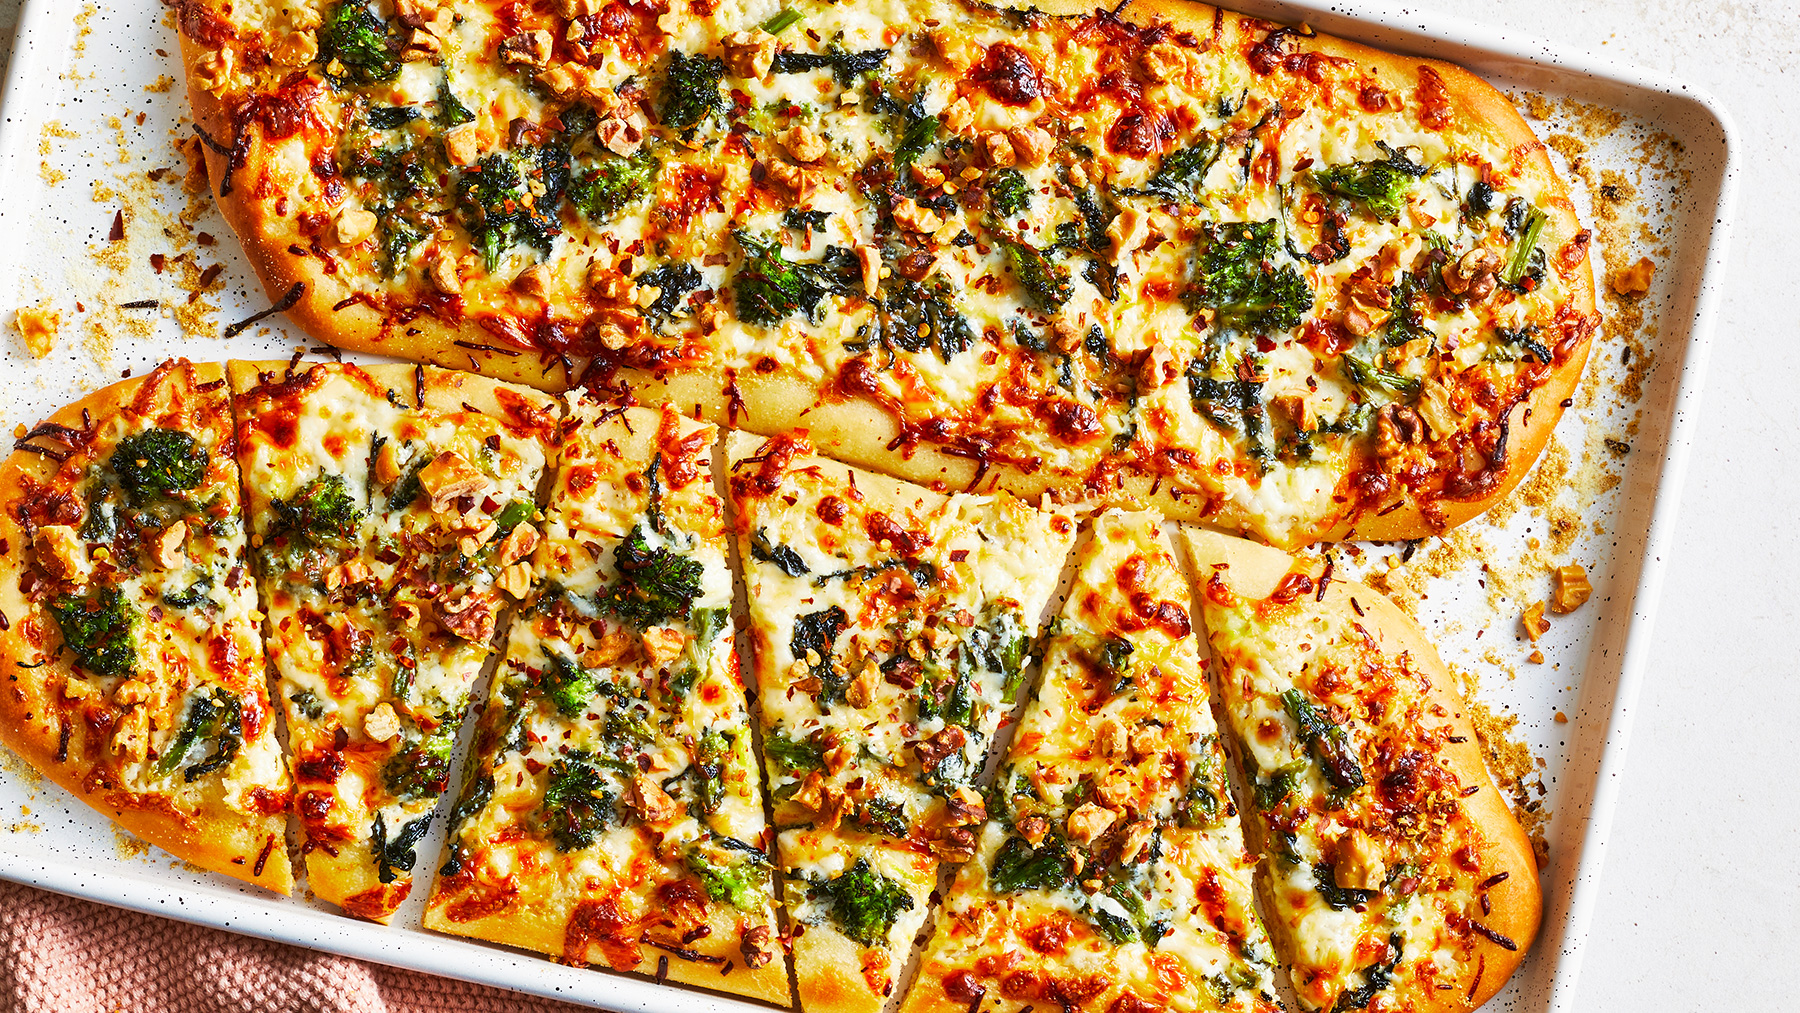 October 2020 Recipes: Green and White Pizza